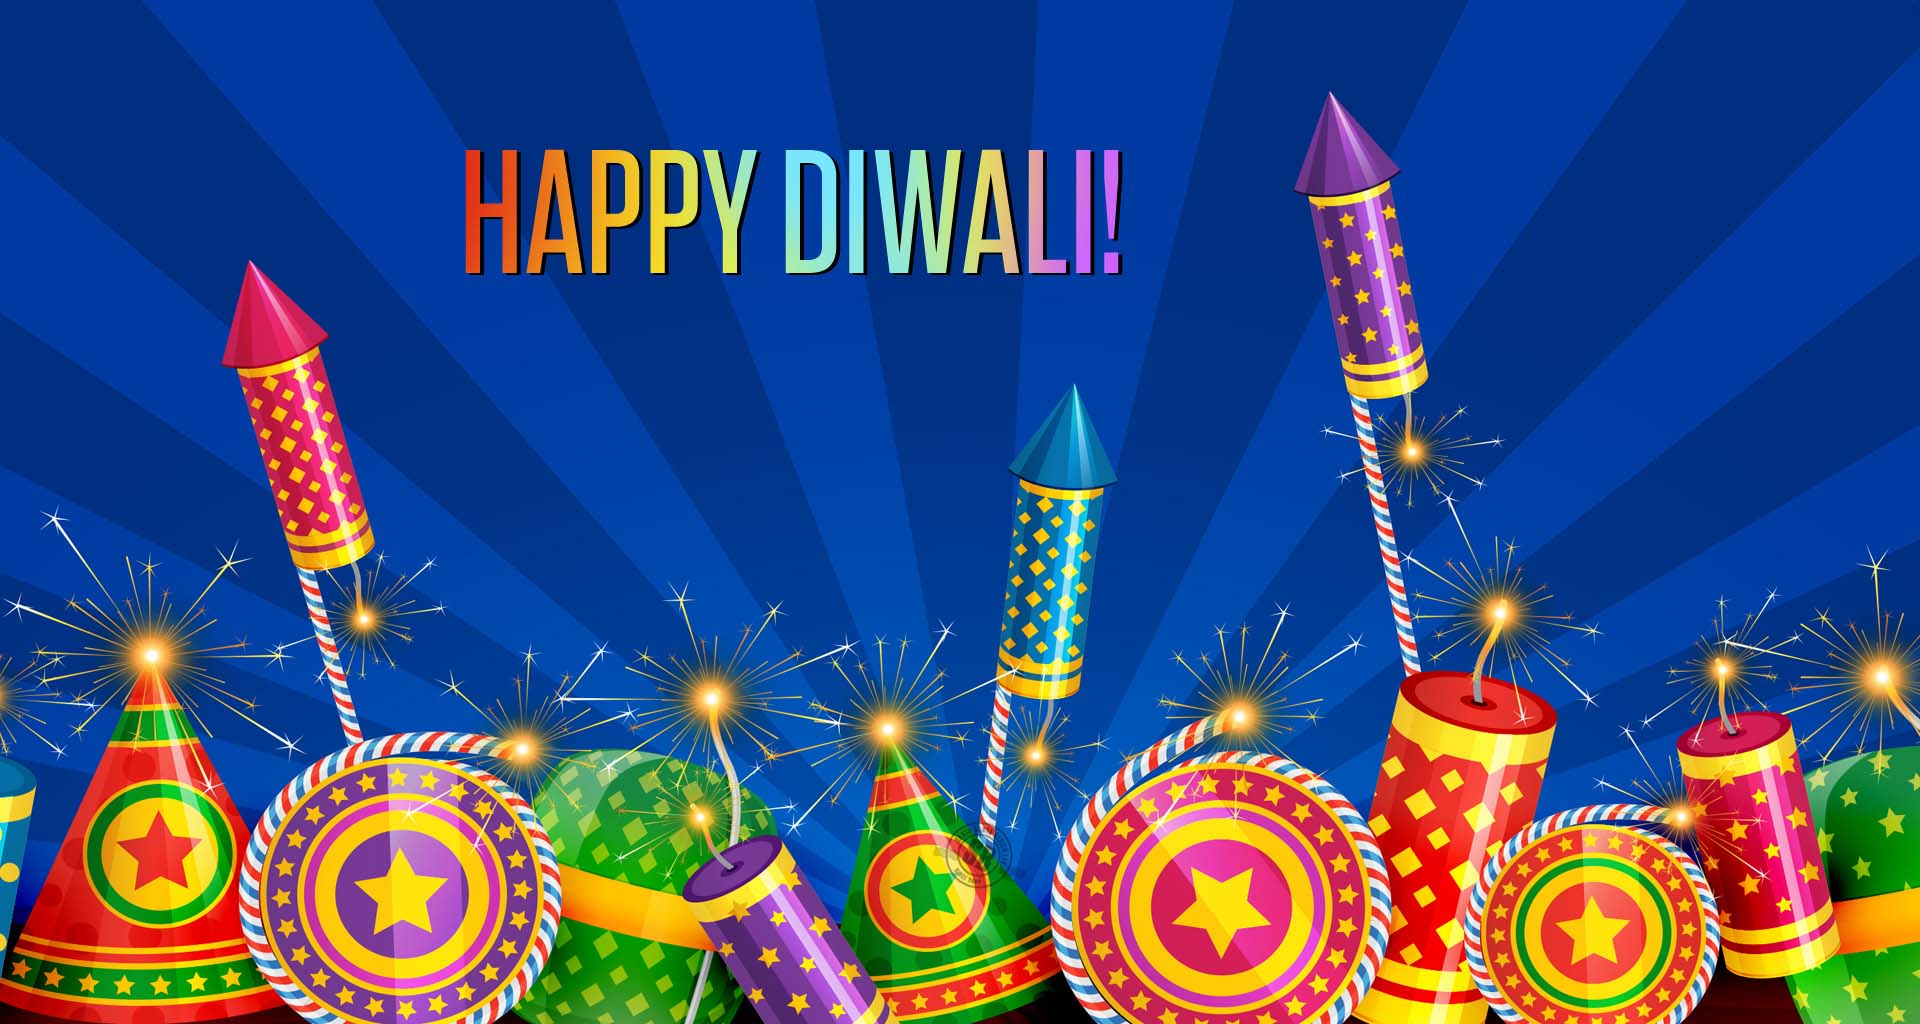 Happy Diwali Messages Wishes Sms Images Whatsapp Status Dp Shubh